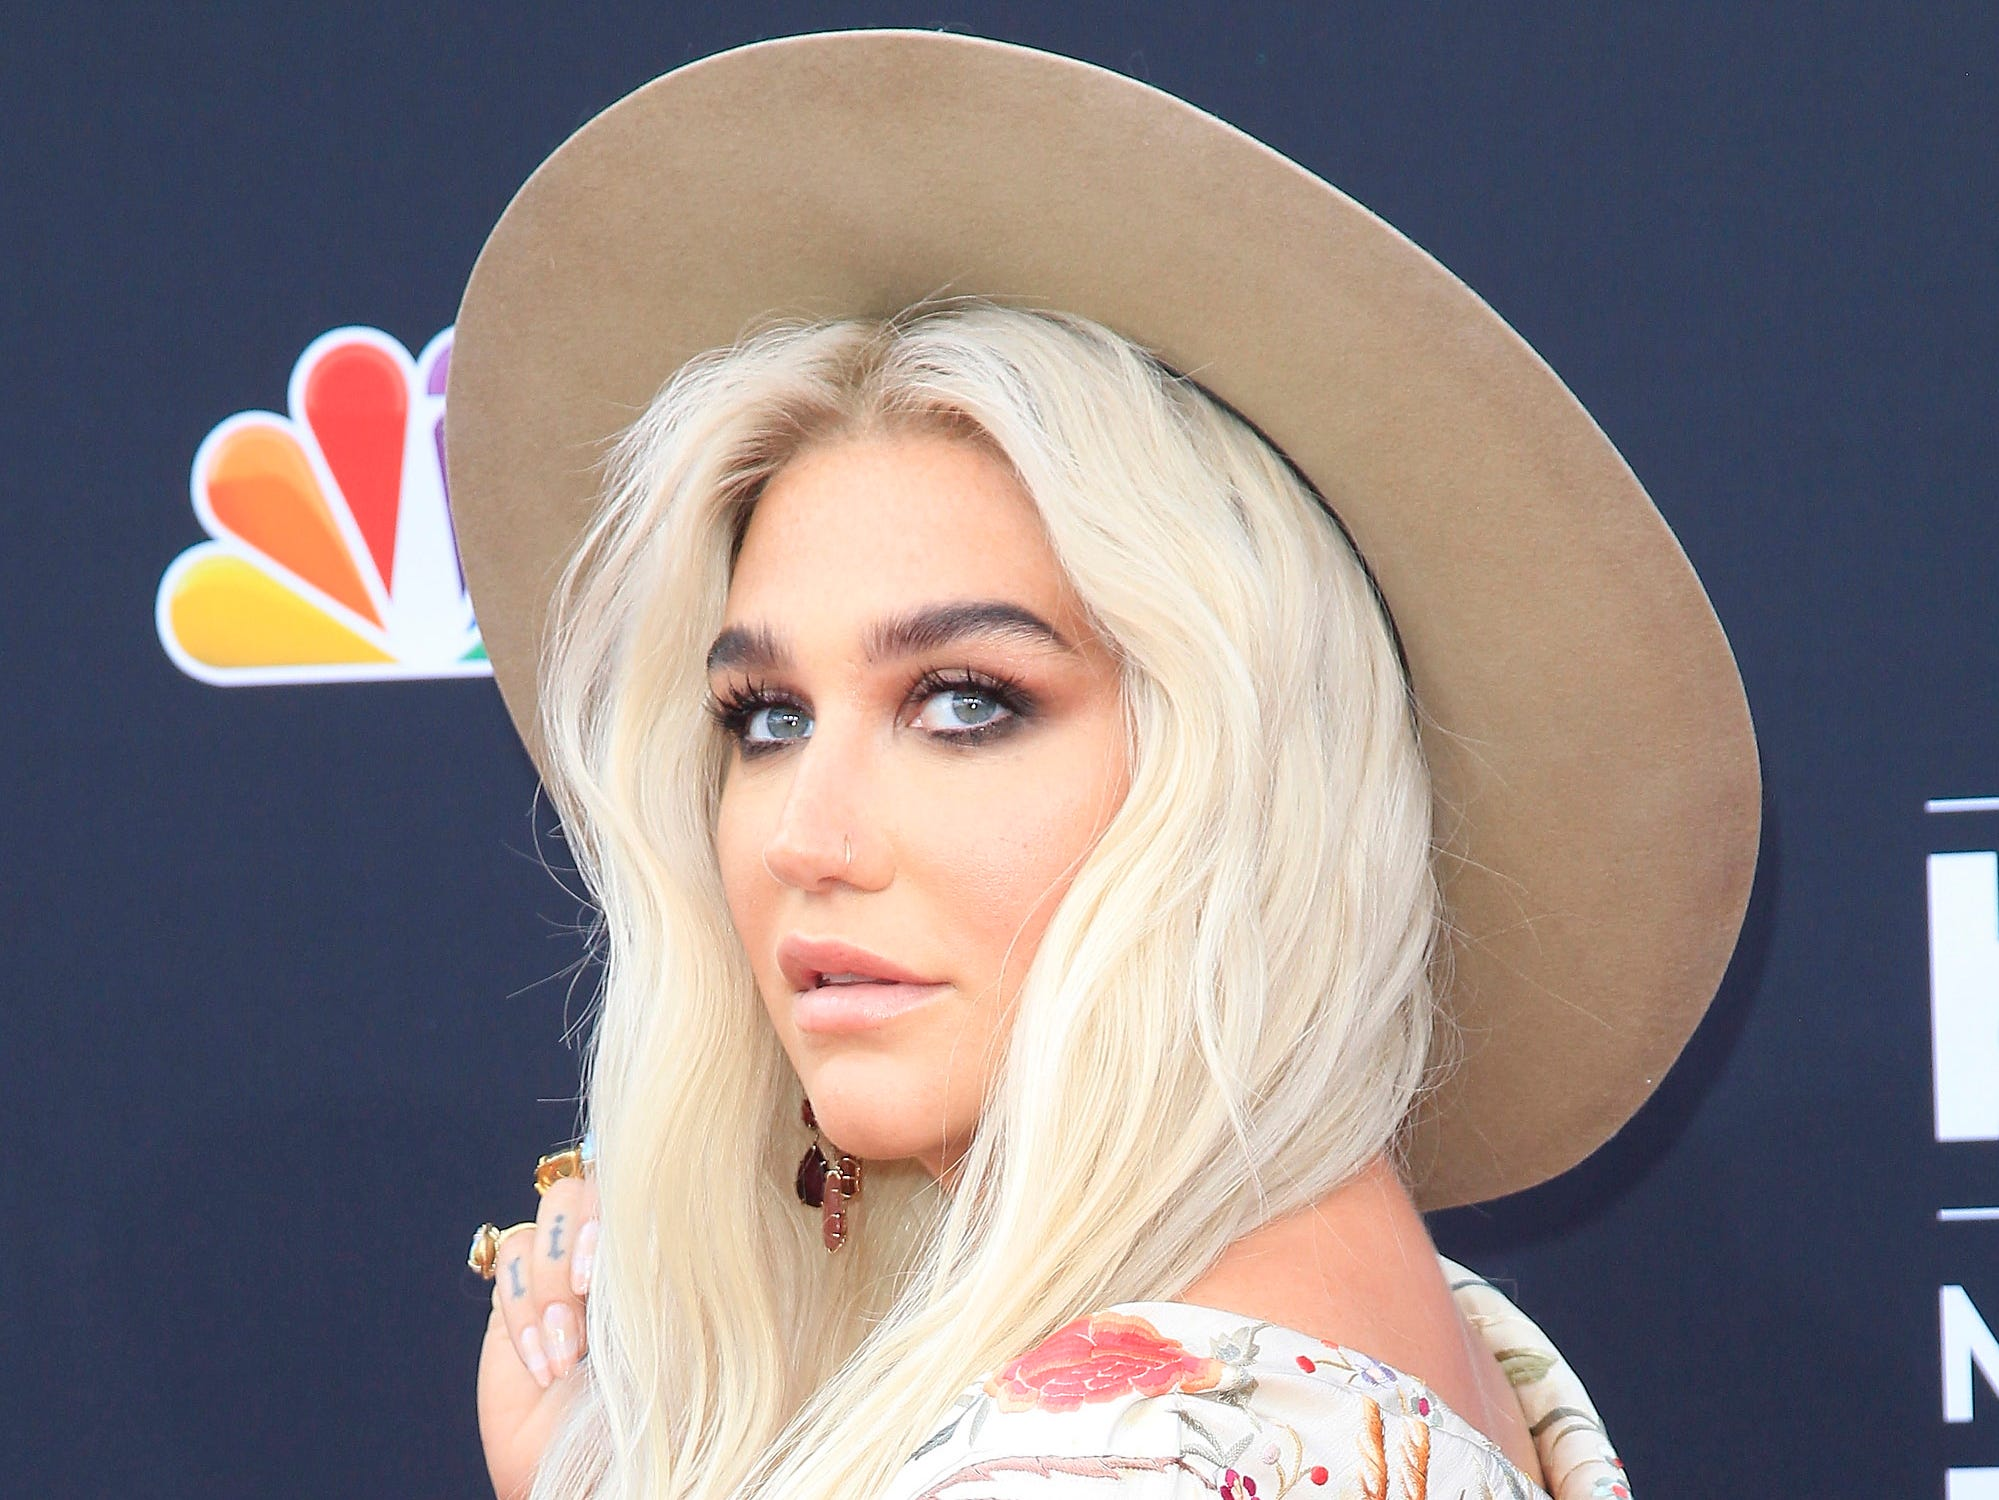 Kesha is a pop music survivor, evolving from the hard-partying image of her early years into a suited-up rock star, with her 2017 album 'Rainbow' marking her triumphant return to music. Revisit Kesha's Kesha's career in photos, with the star seen here arriving to the 2018 Billboard Music Awards in Las Vegas, Nevada, on May 20, 2018.